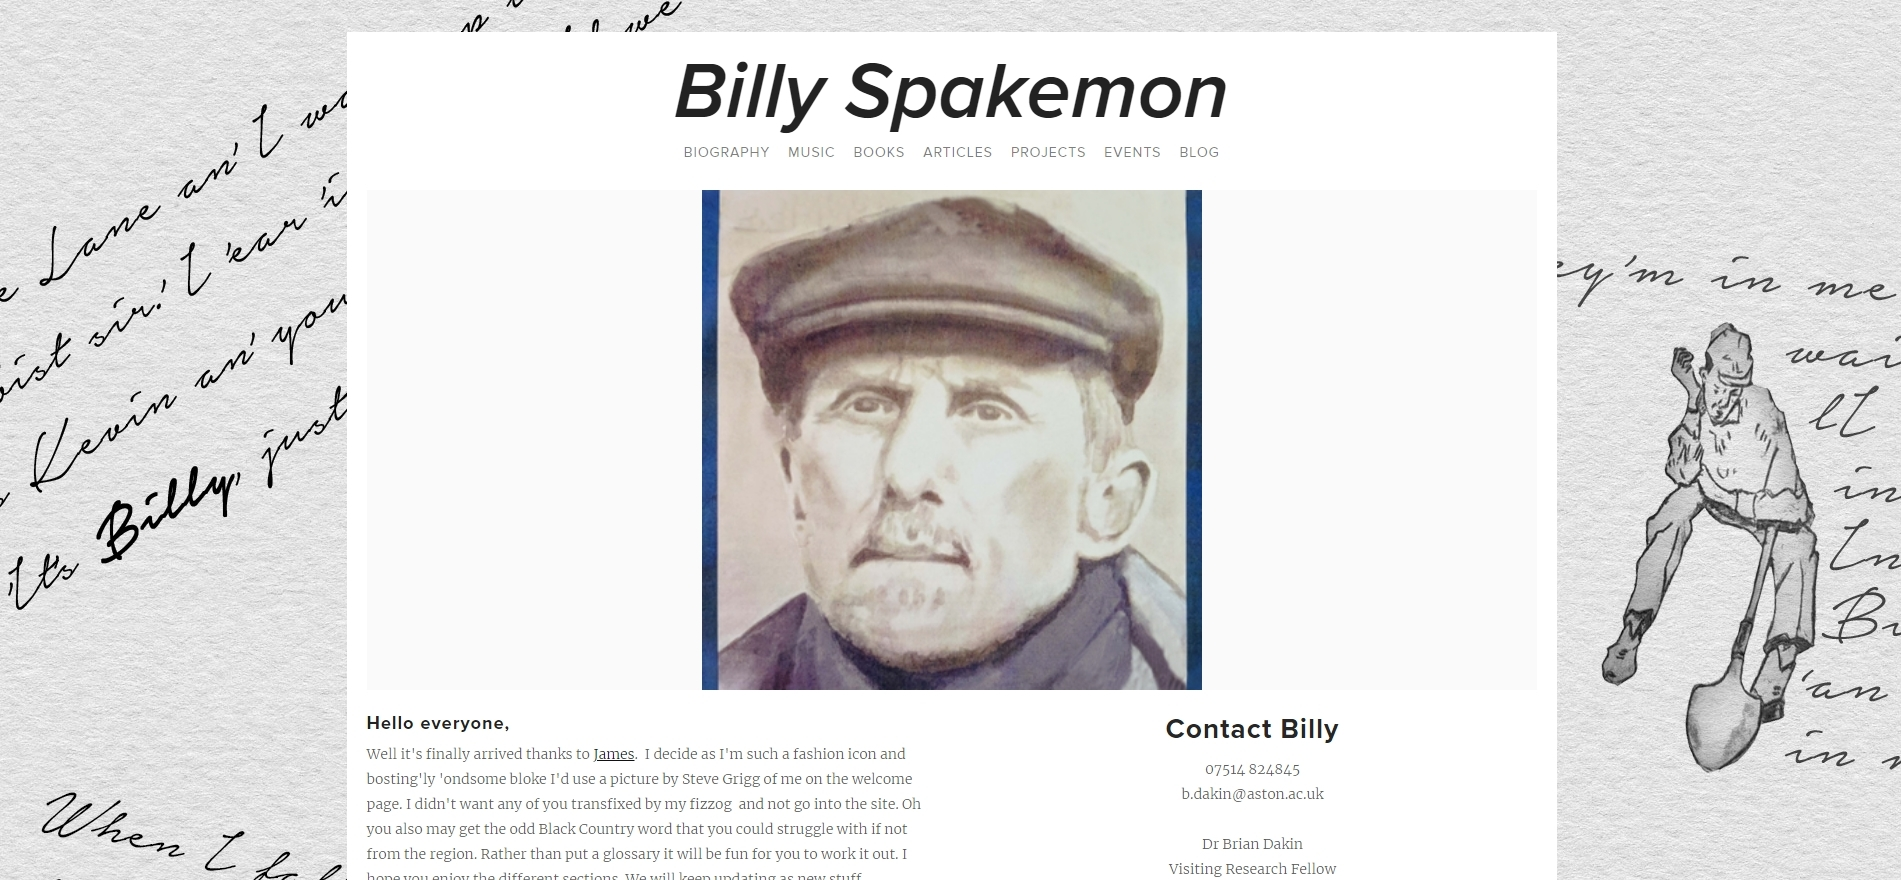 Billy Spakemon - Author, singer-songwriter portfolio website